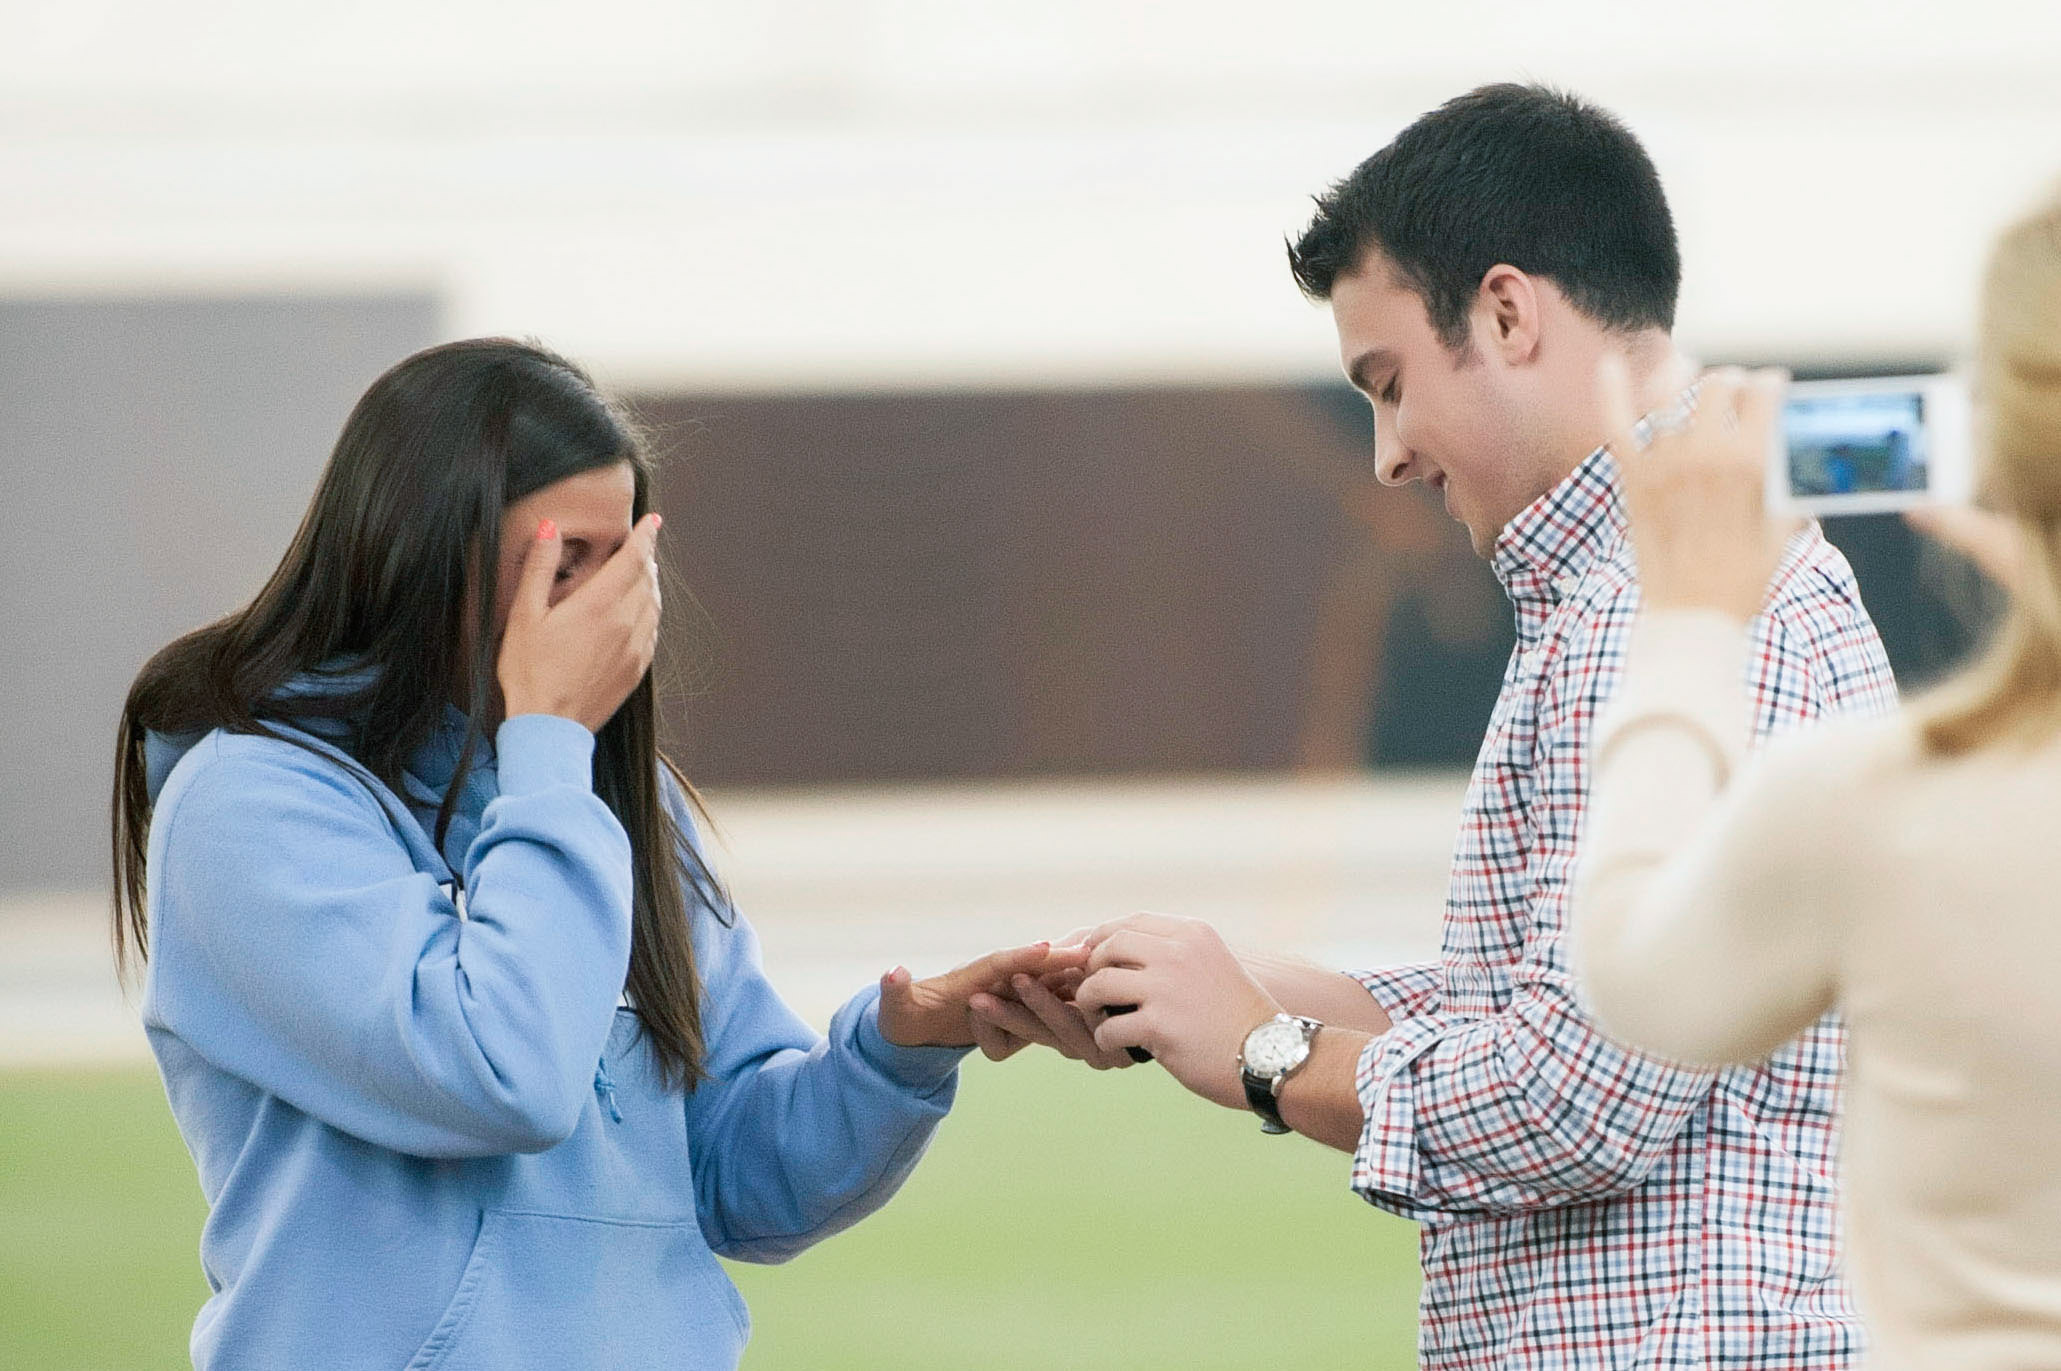 Image 13 of Marriage Proposal at Lacrosse Practice